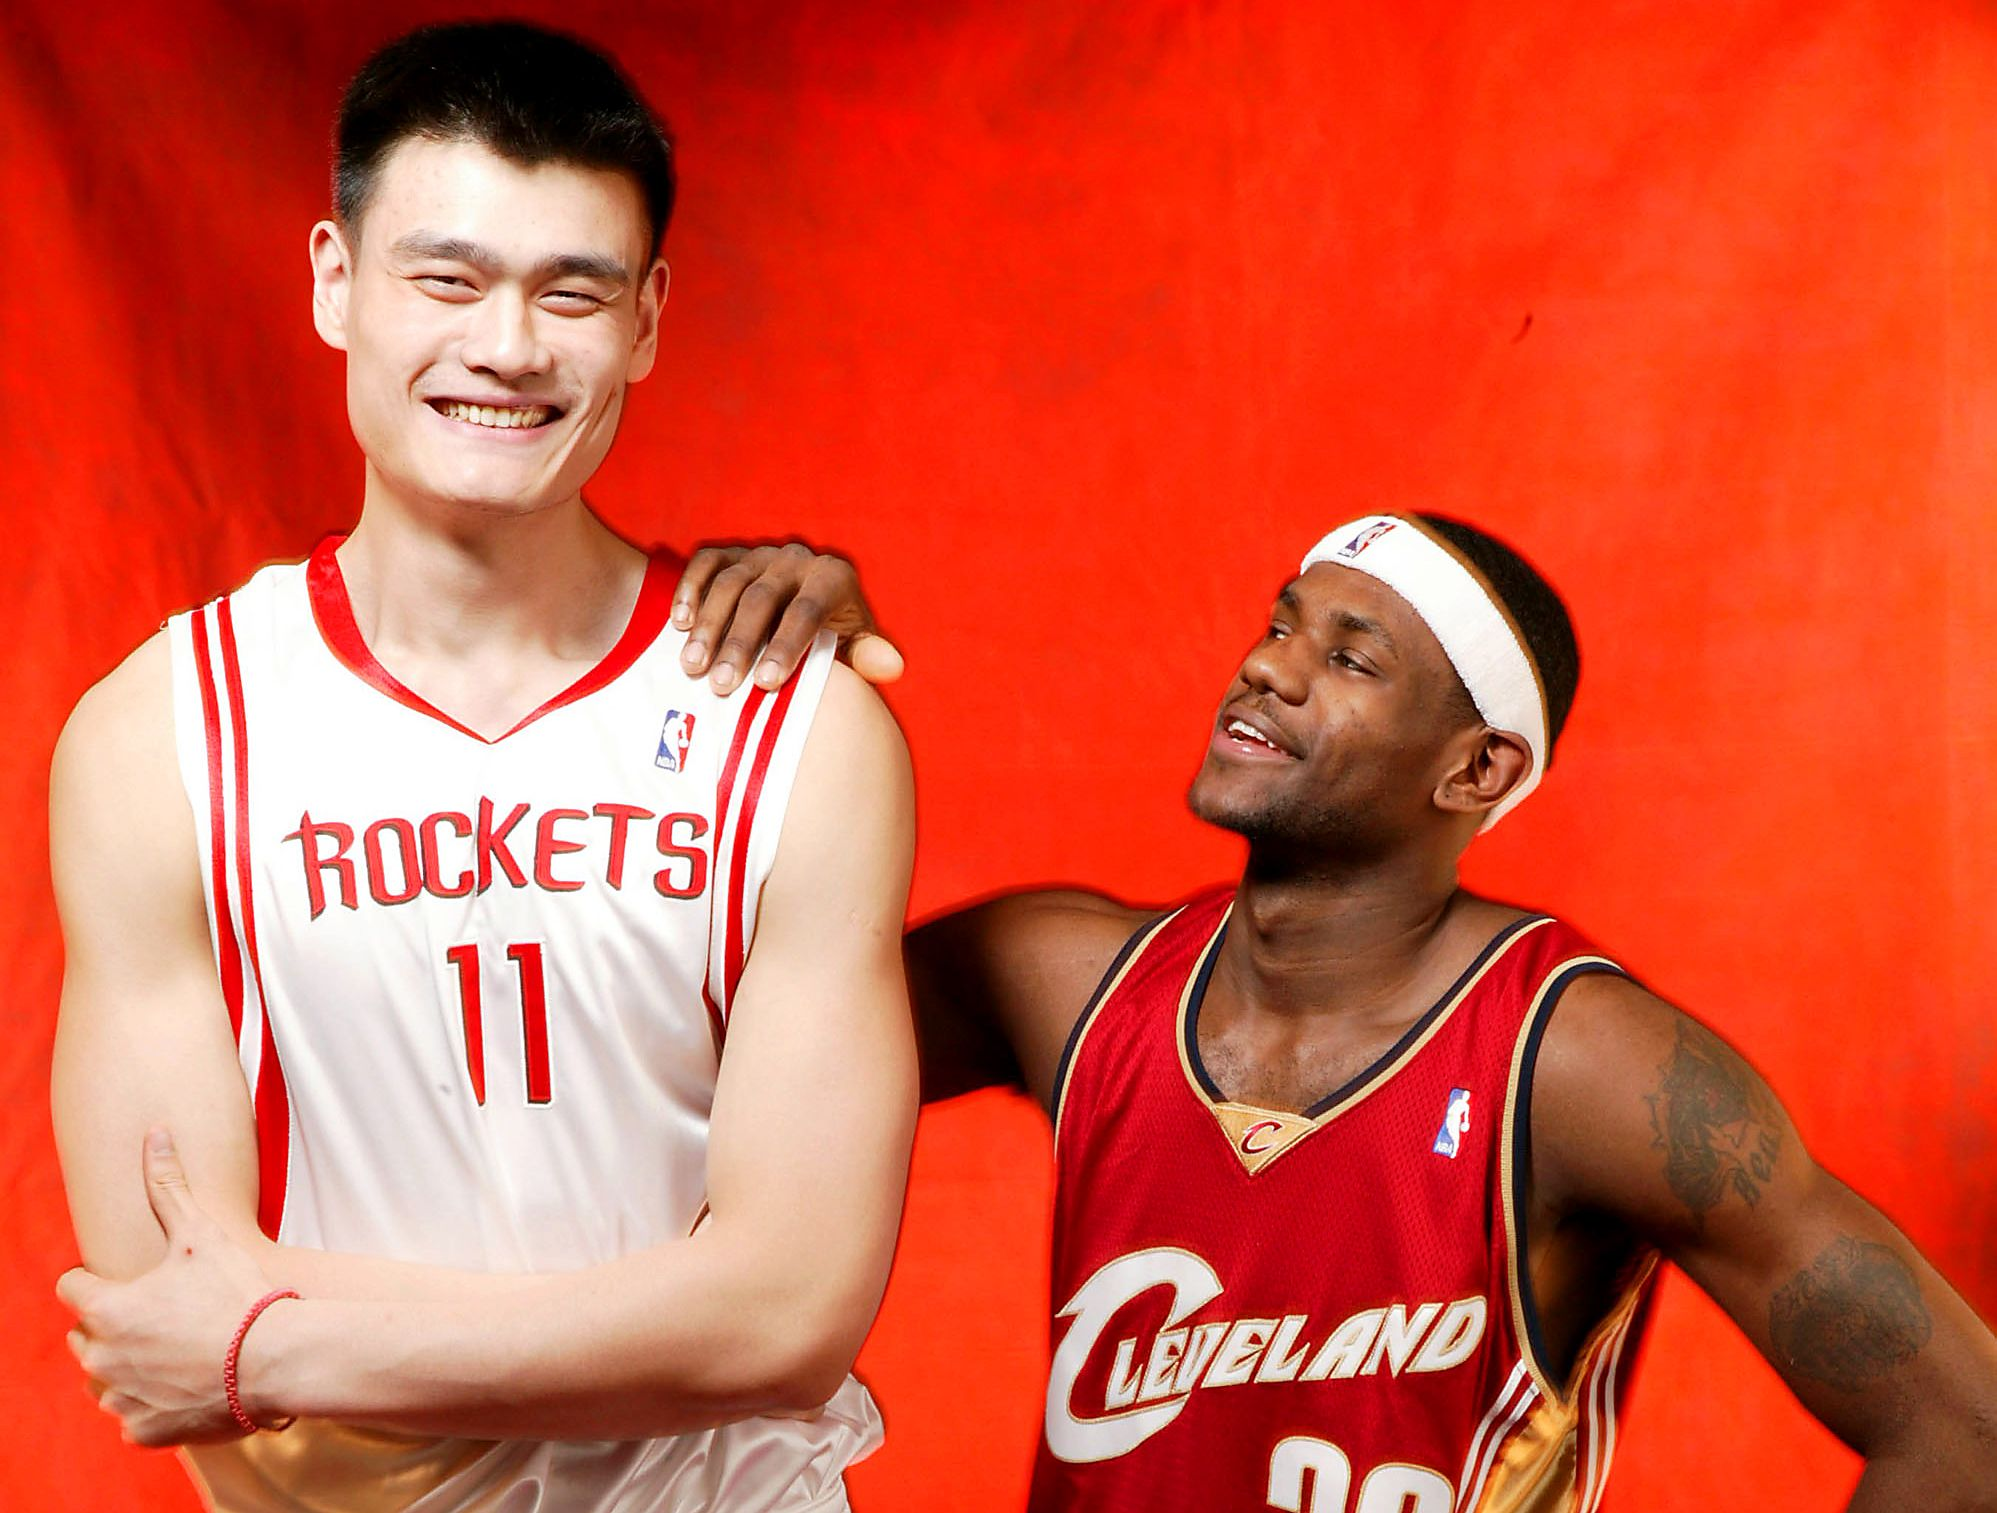 Yao Ming Lebron James Yao Ming A Hall Of Fame Photo